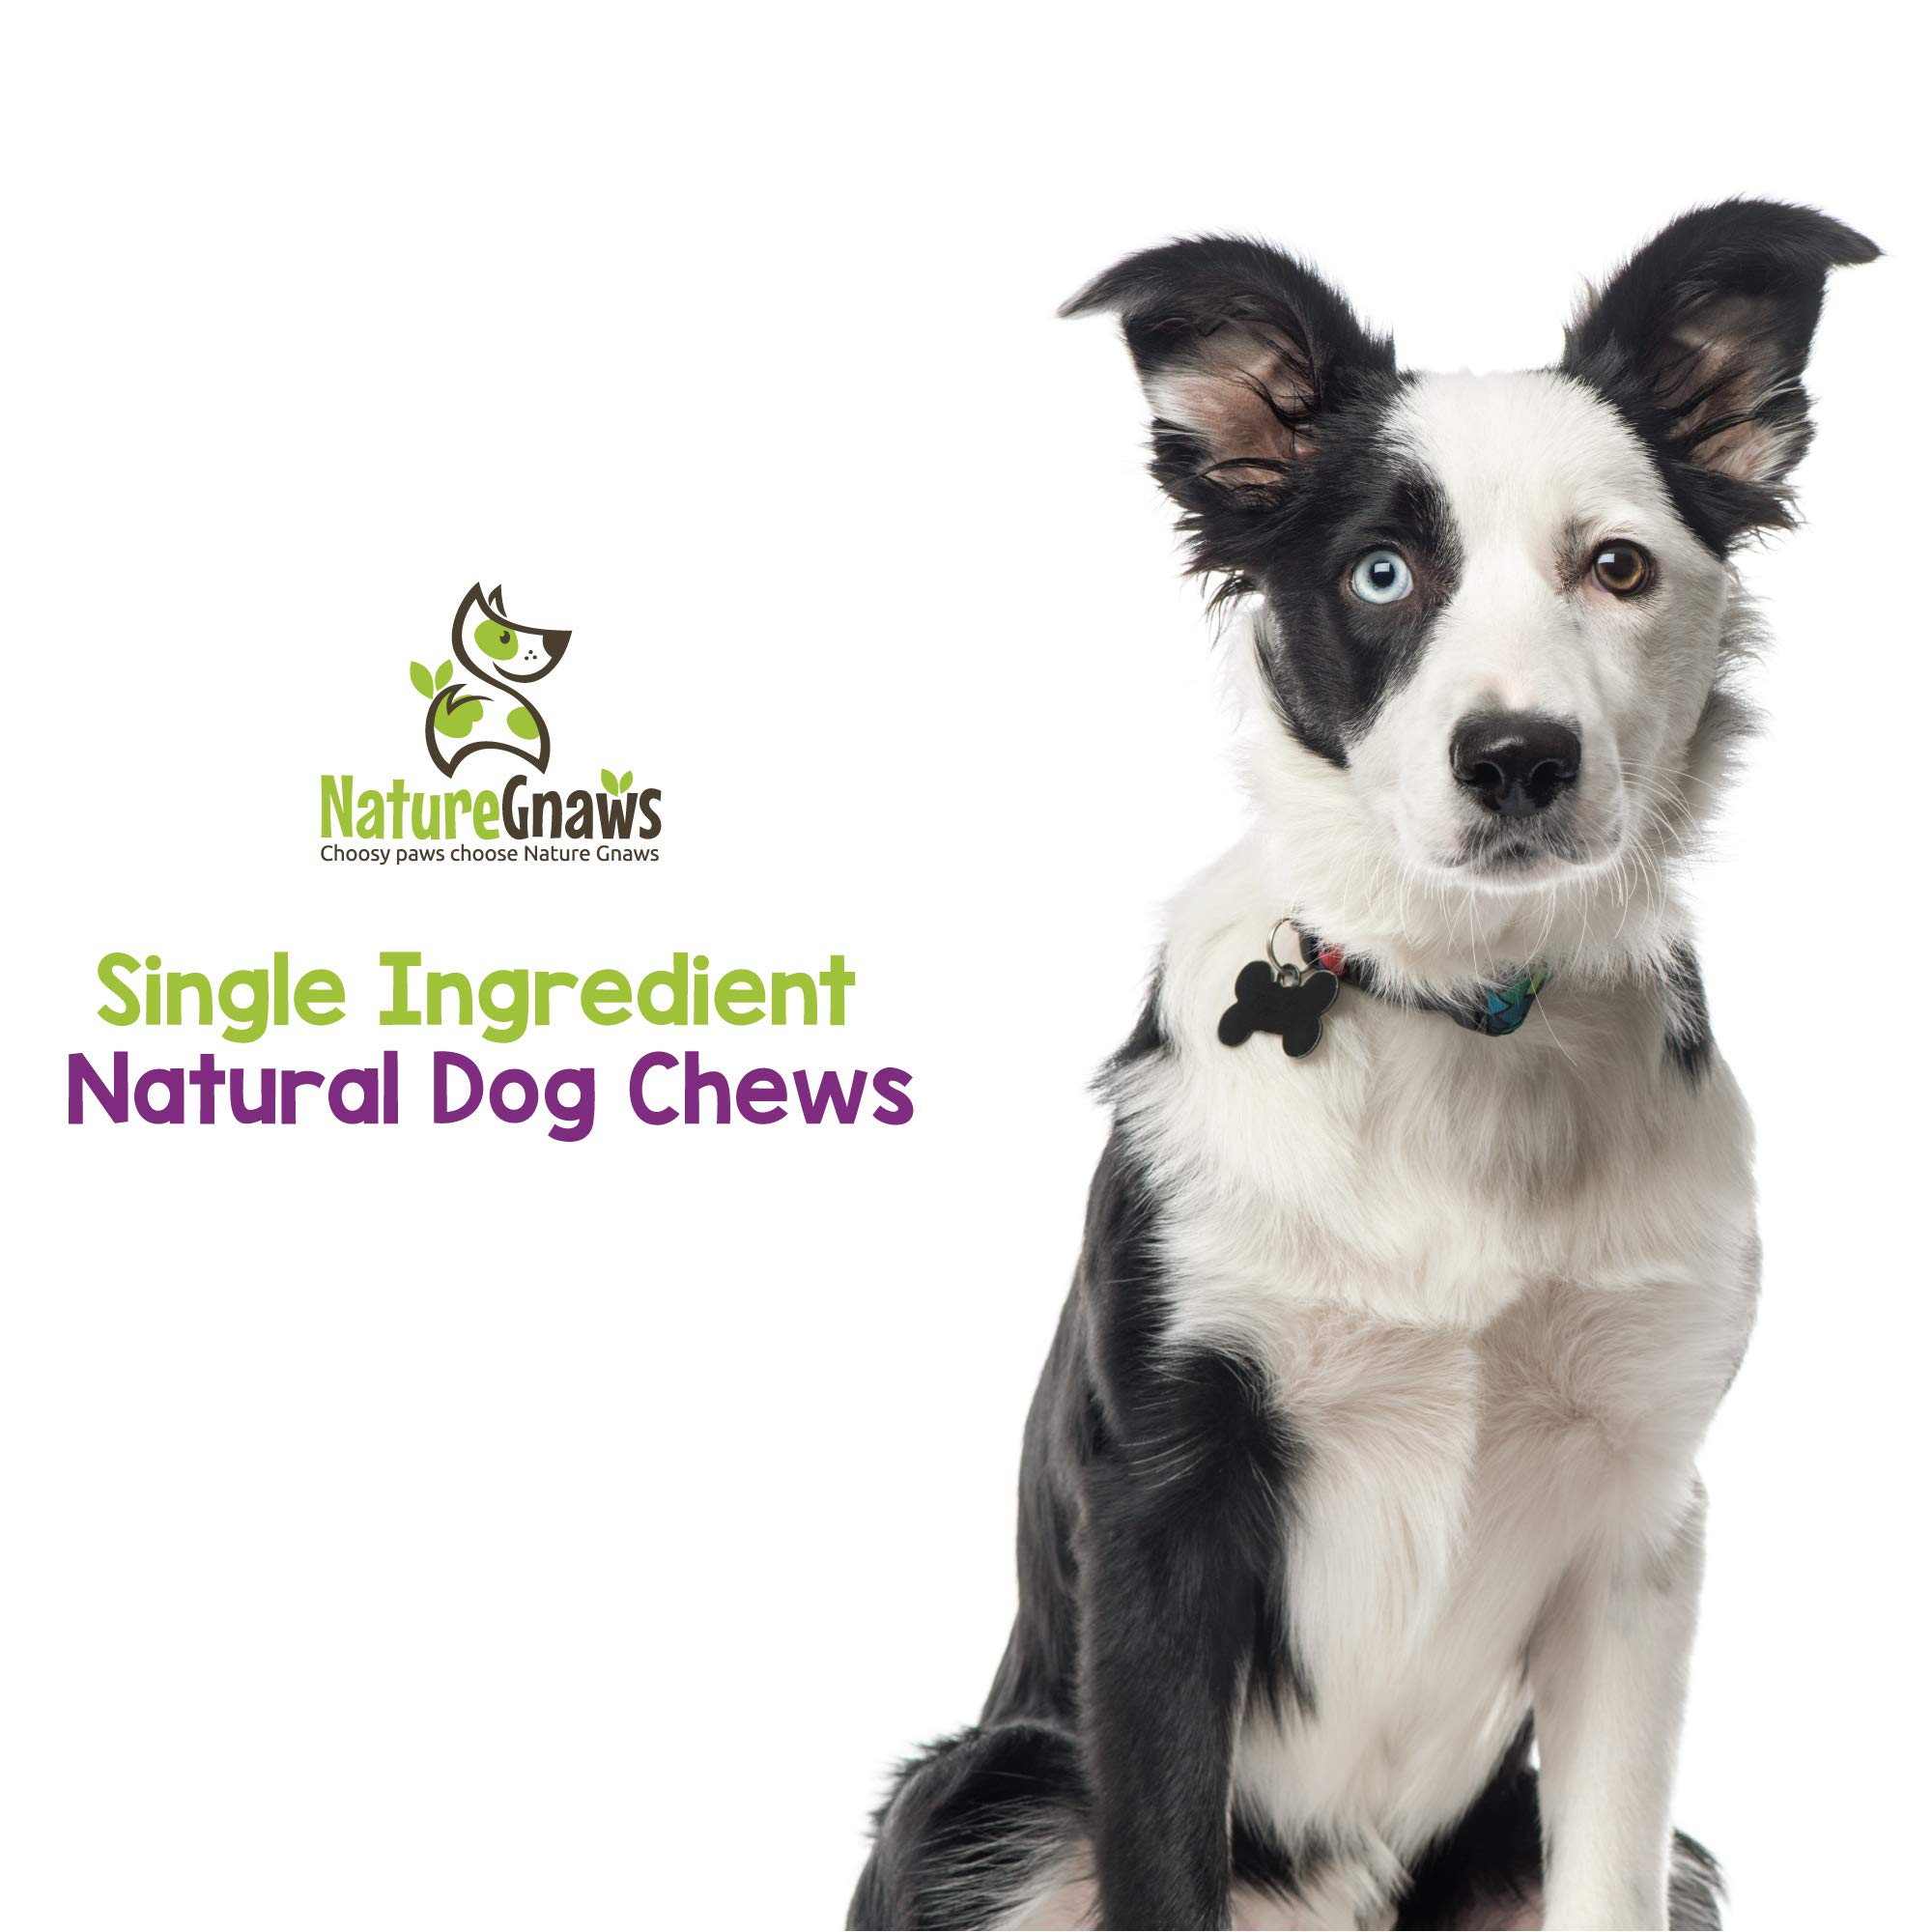 Nature Gnaws Braided Bully Stick Bites 2-4'' (15 Pack) - 100% Natural Grass-Fed Free-Range Premium Beef Dog Chews by Nature Gnaws (Image #6)